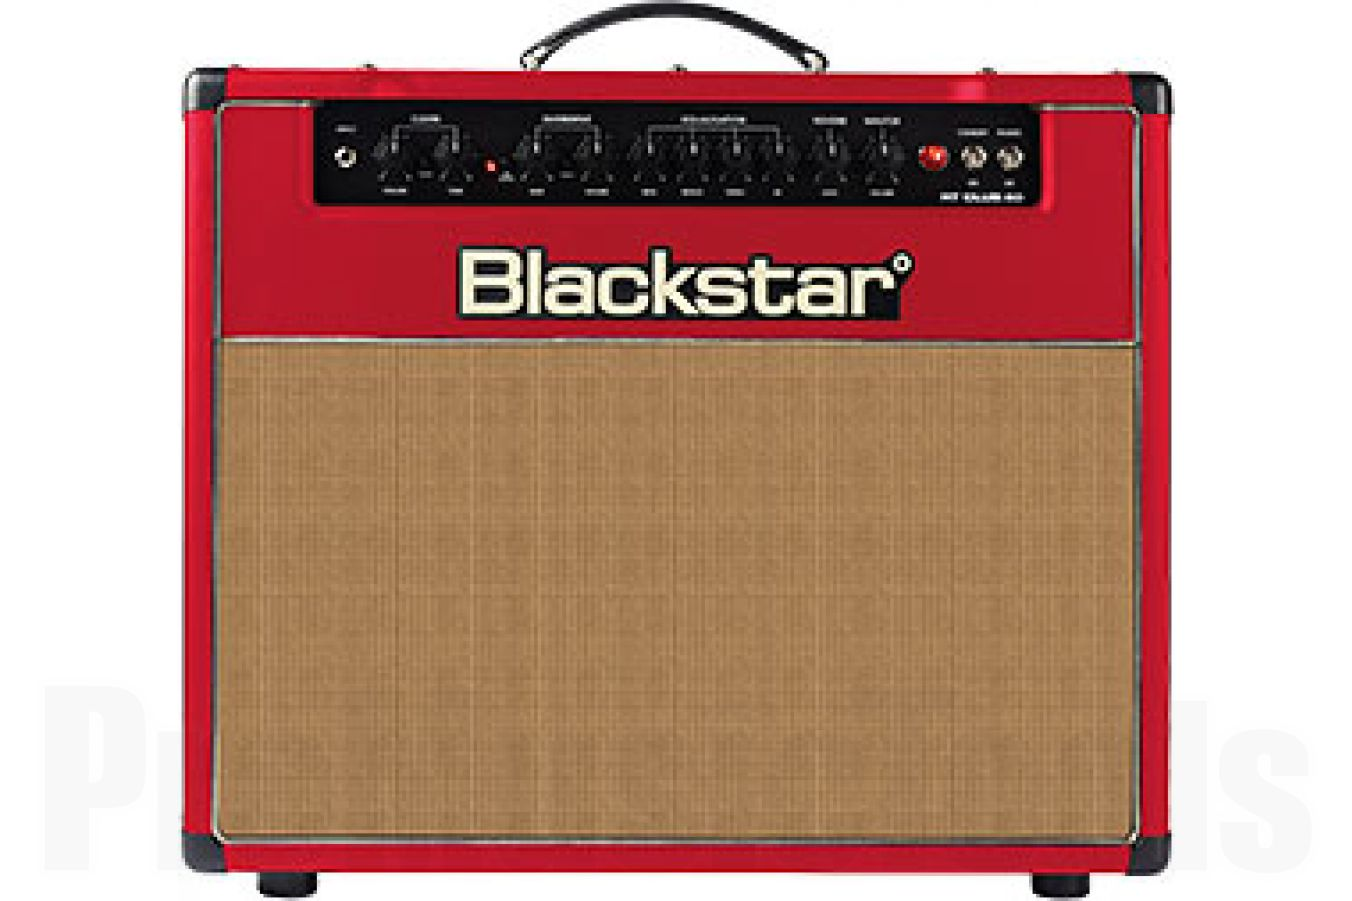 Blackstar HT Club 40 Combo - Red Limited Edition - b-stock (1x opened box)